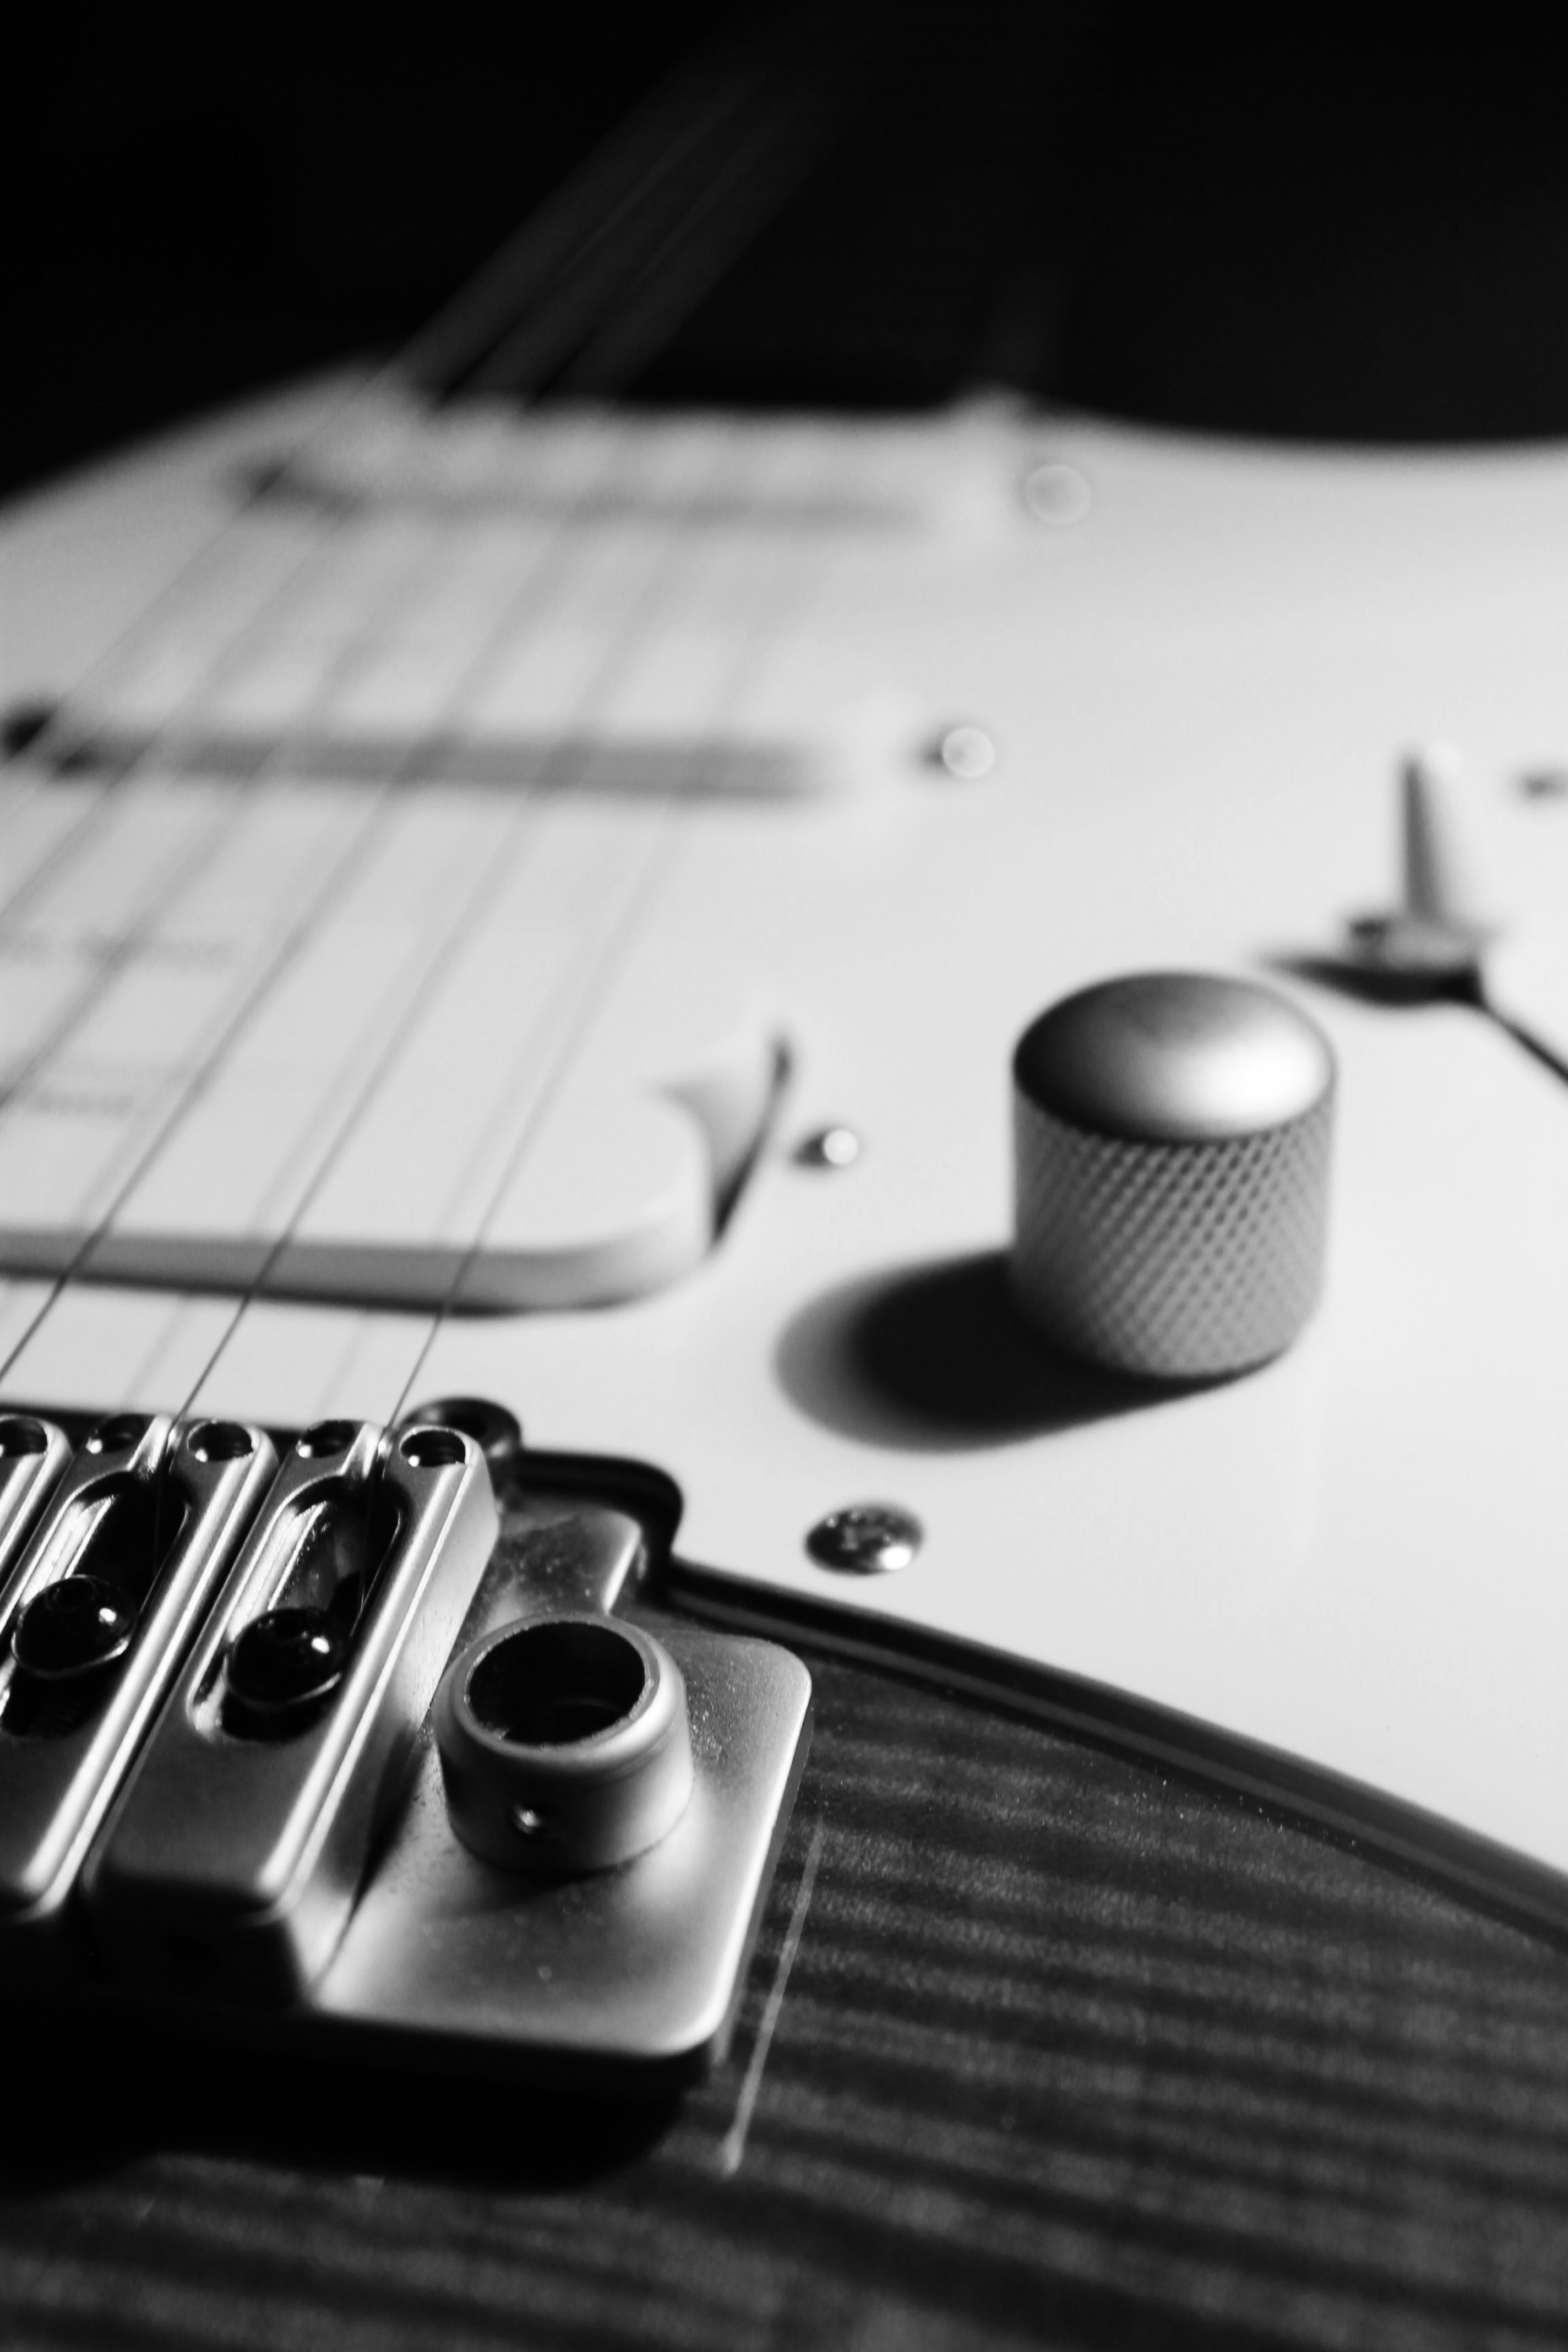 Second Image from the series. #guitar